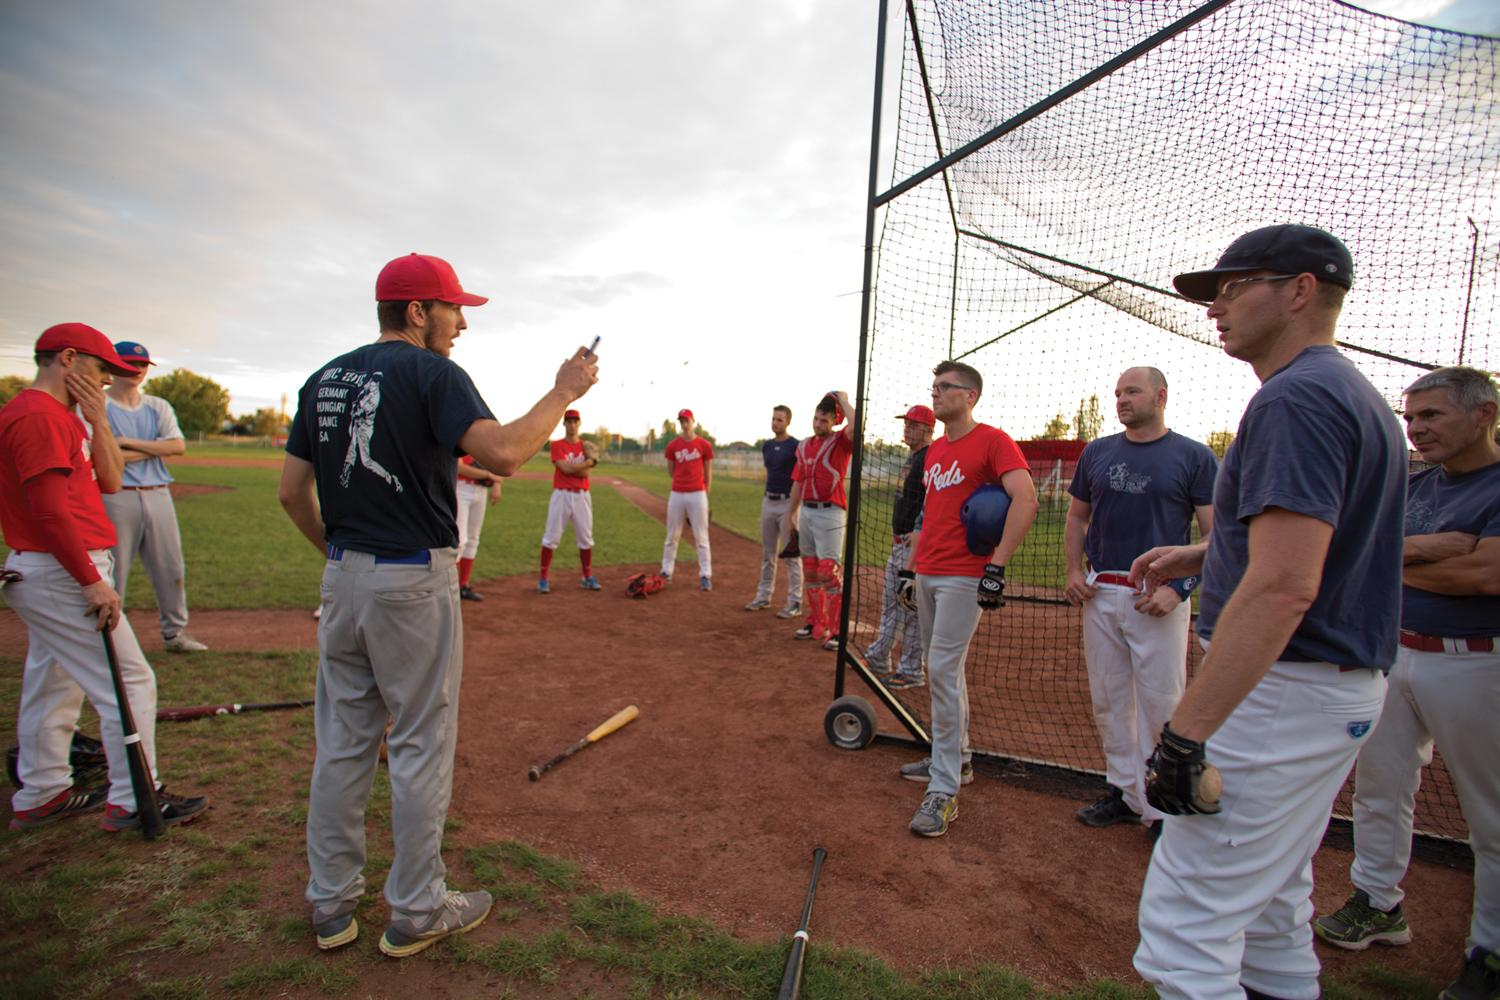 Canadian Baseball Devotee Brings Love Of Game To Hungary